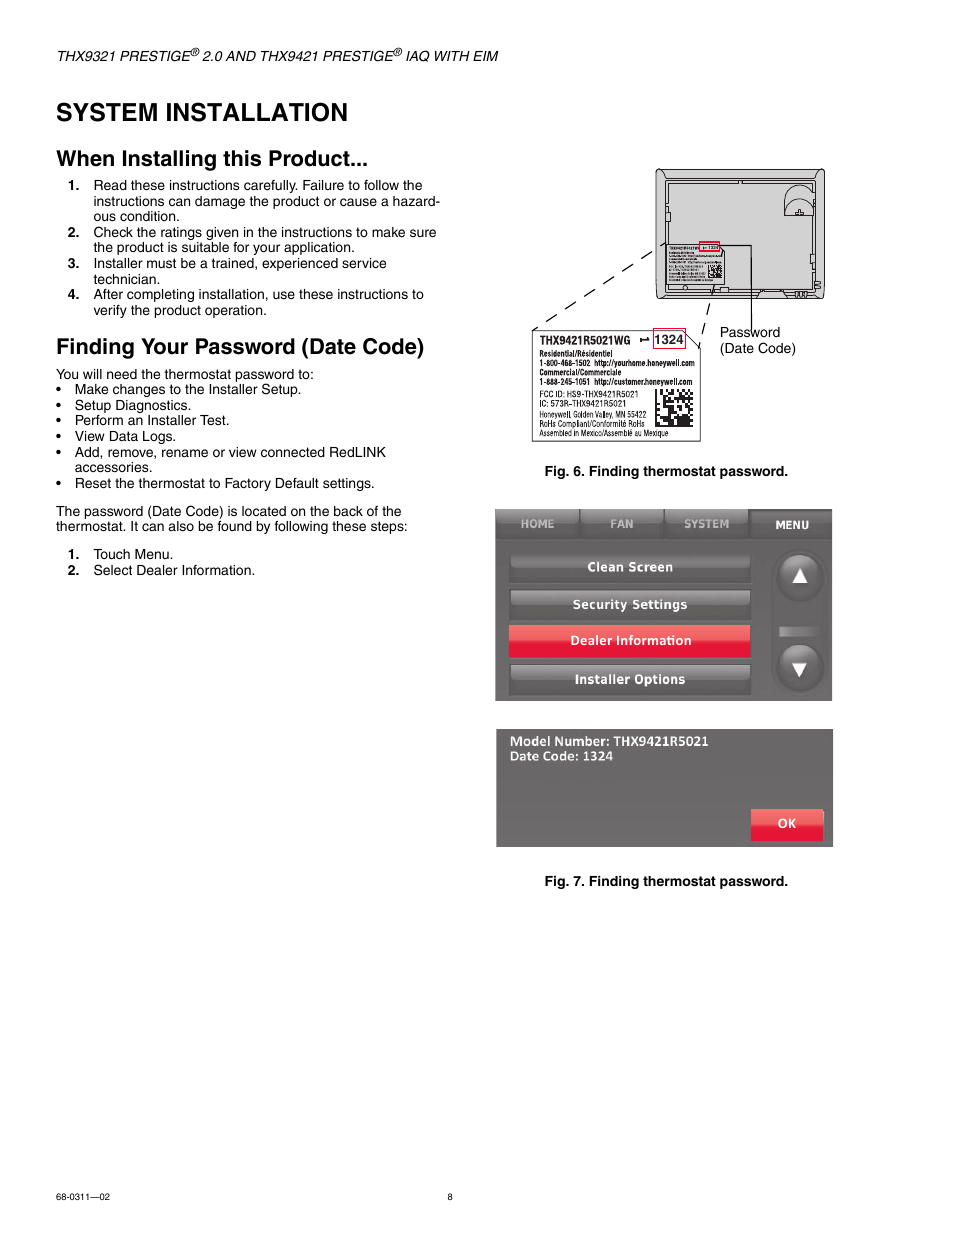 System installation, When installing this product, Finding your password  (date code) | Honeywell PRESTIGE THX9321 User Manual | Page 8 / 160